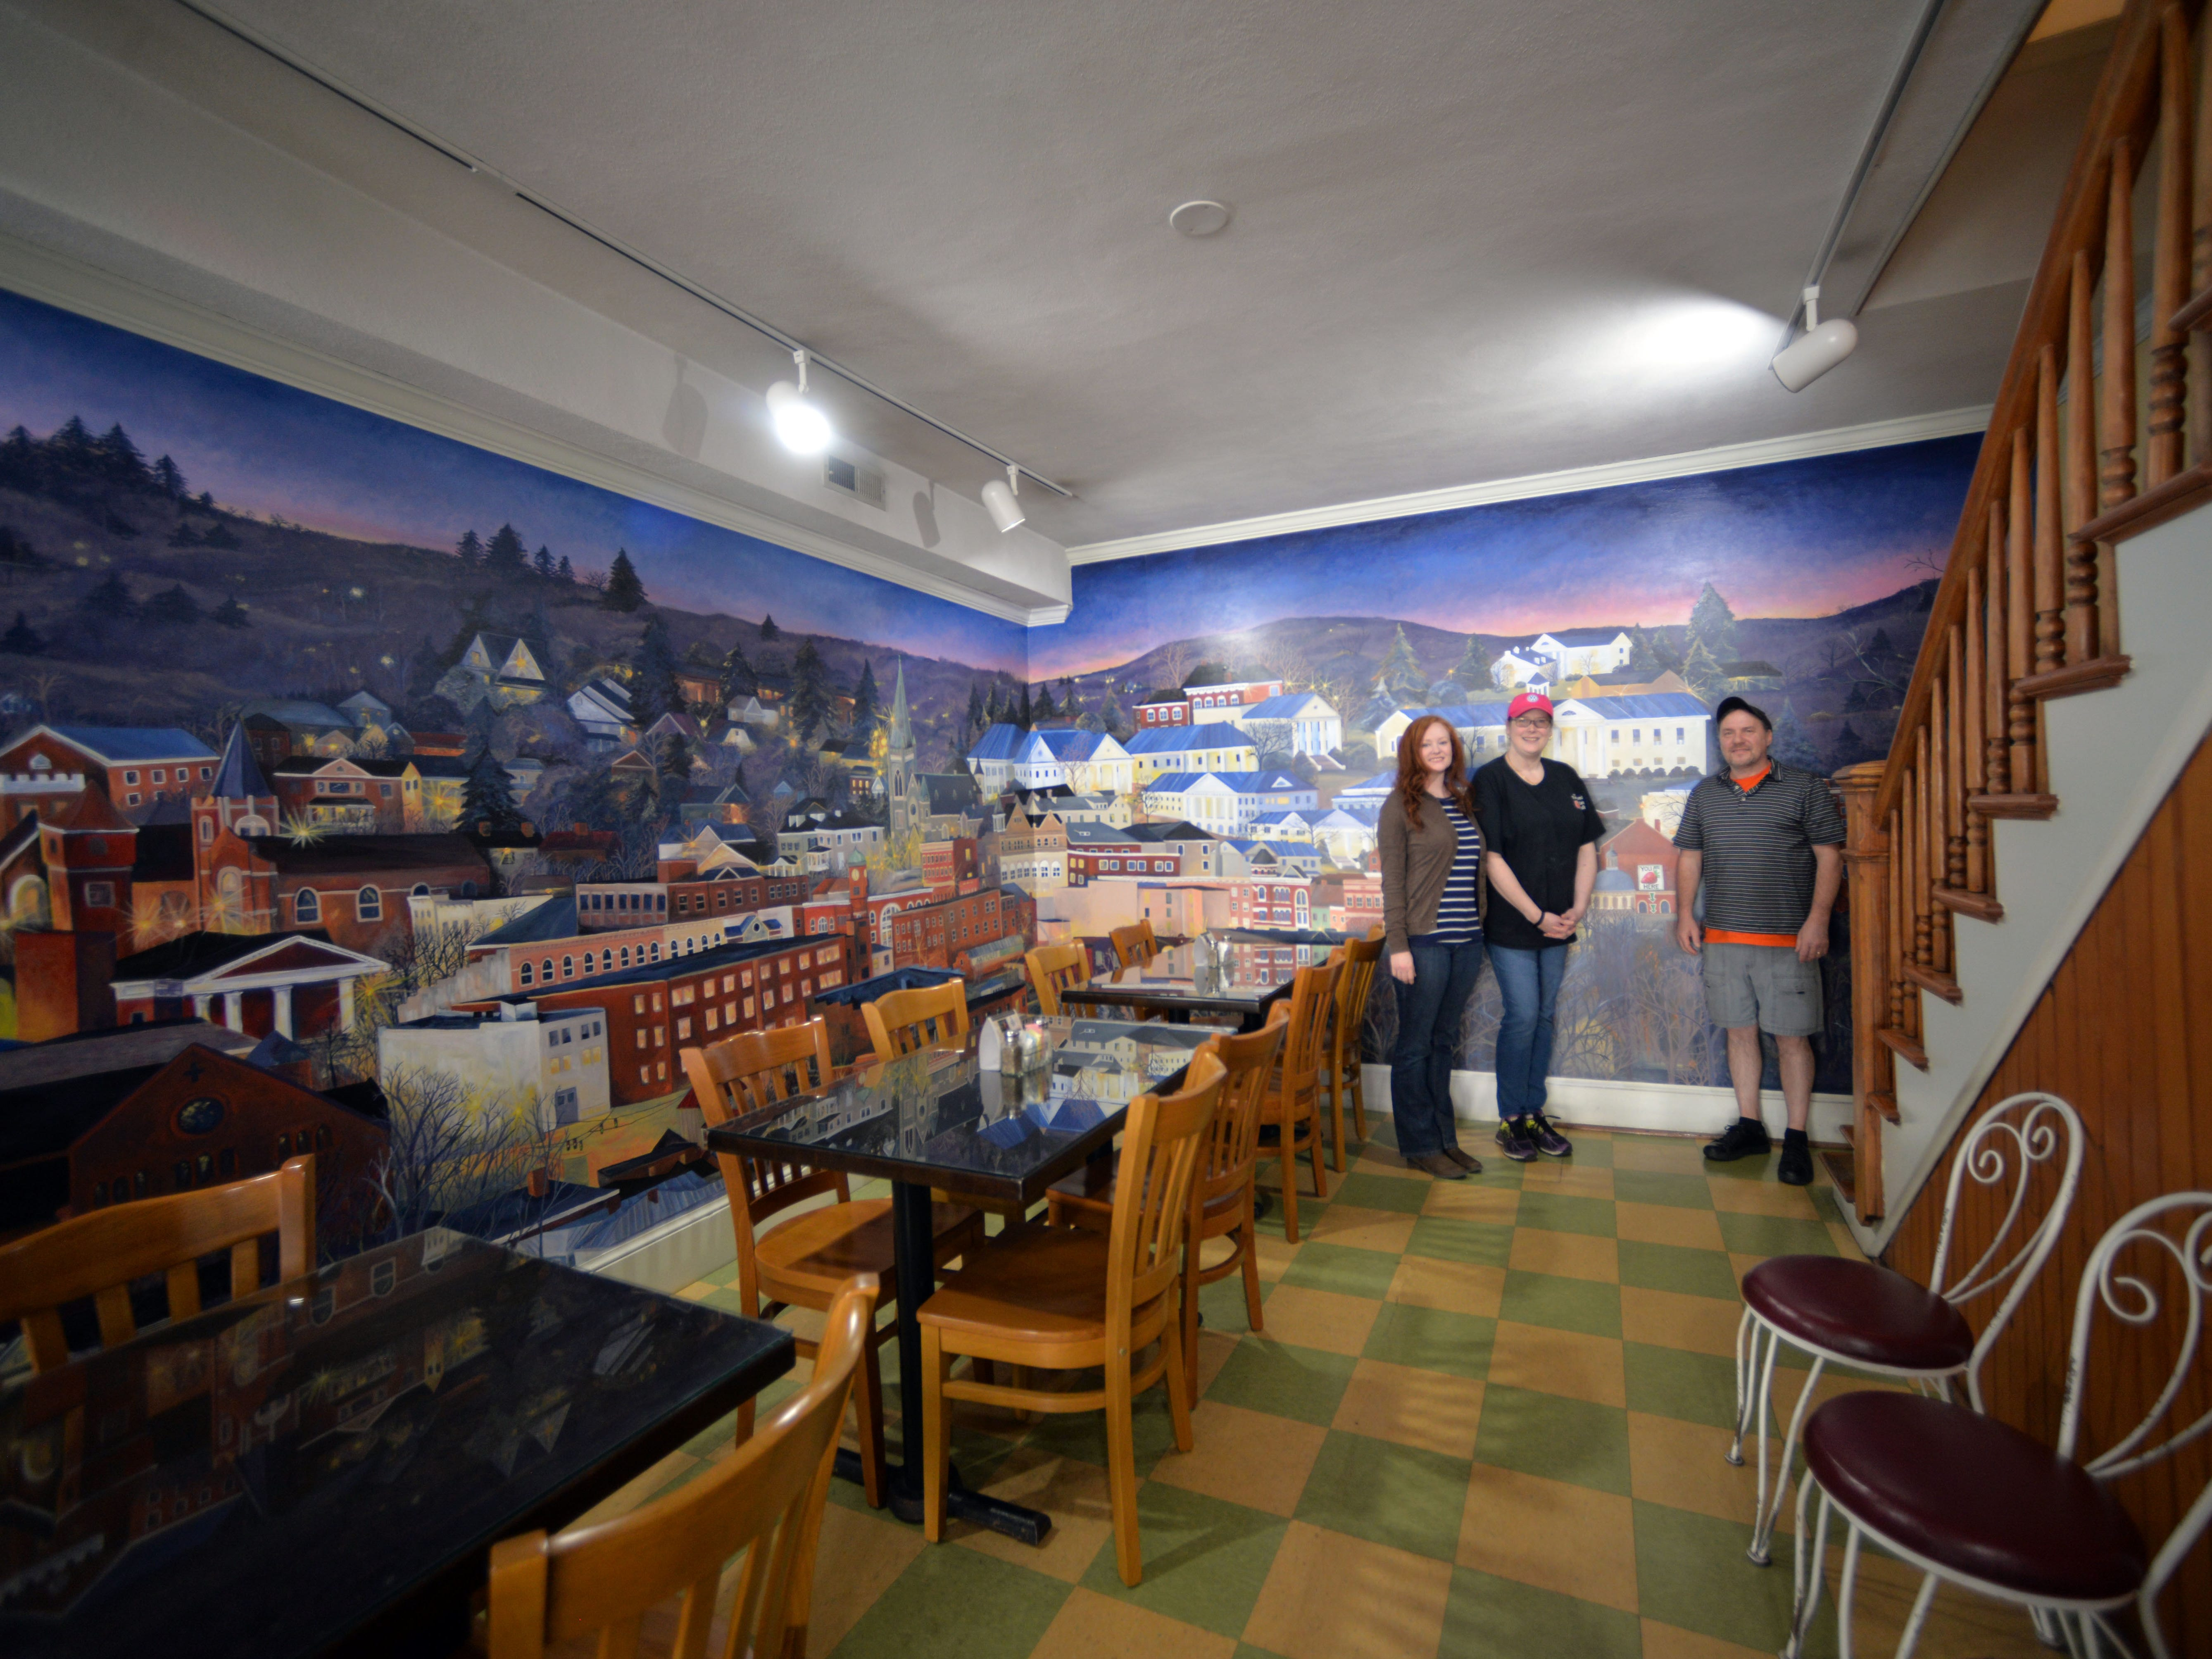 A new mural has been painted inside one of Staunton's downtown sandwich cafes to celebrate 40 years of continual business. From left to right: Mural artist and employee Rebecca Razul, co-owner Valorie Simmons and co-owner Scott Simmons.